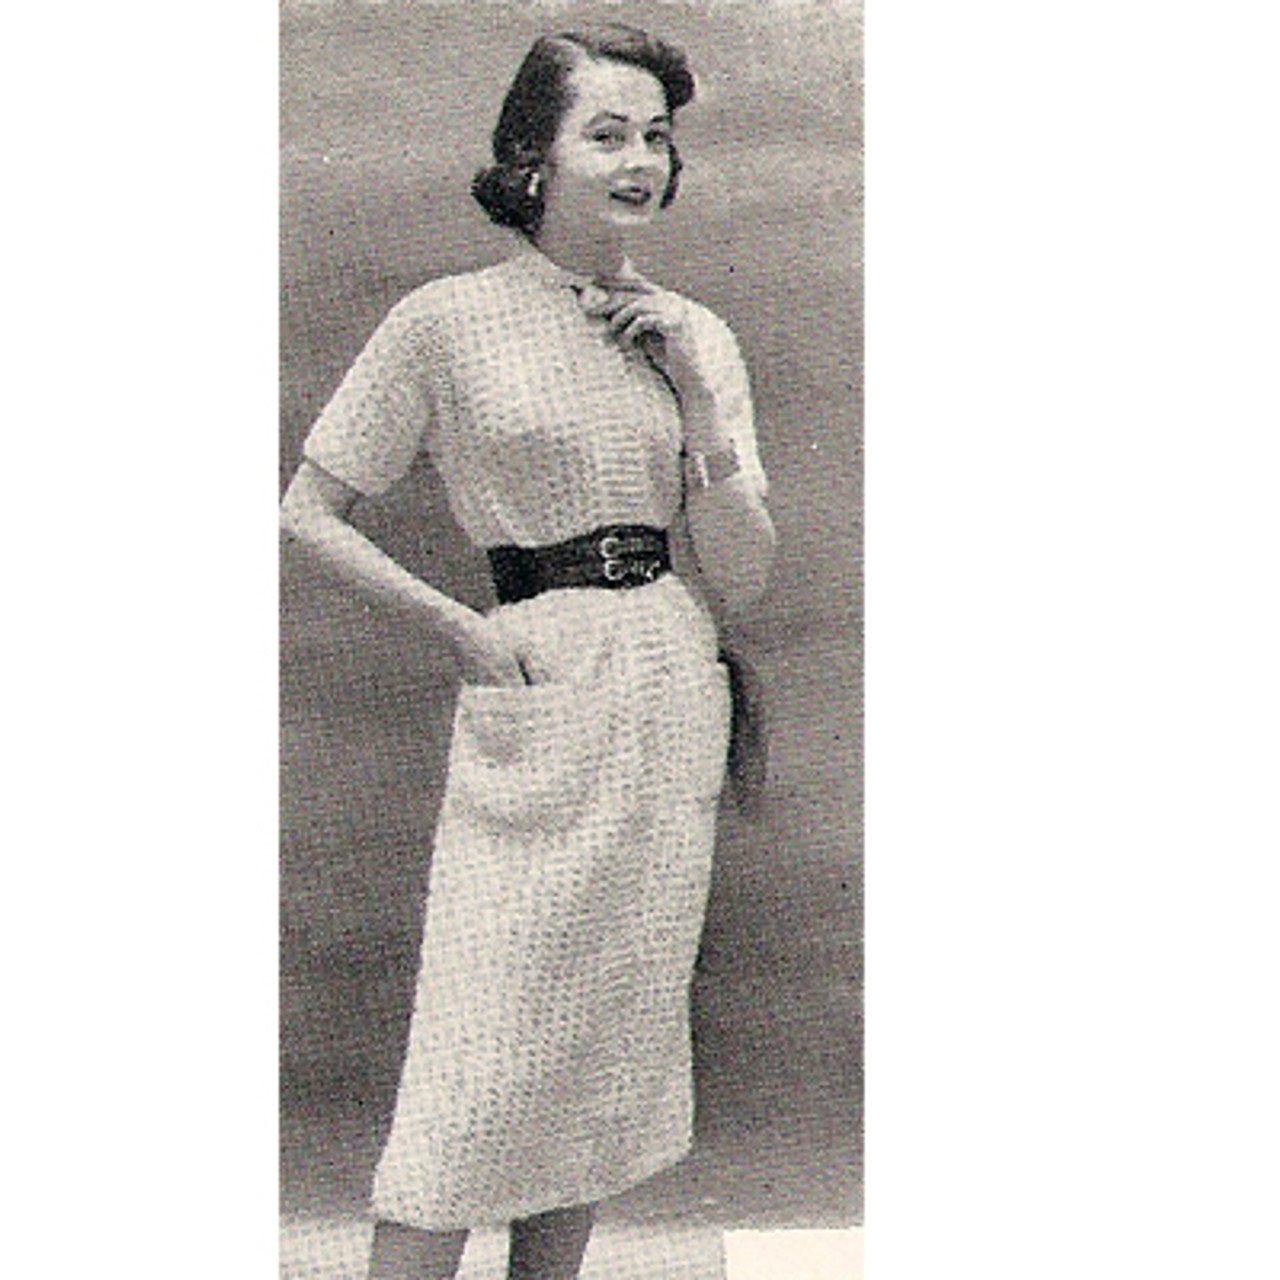 Short Sleeve Knitted Dress Pattern